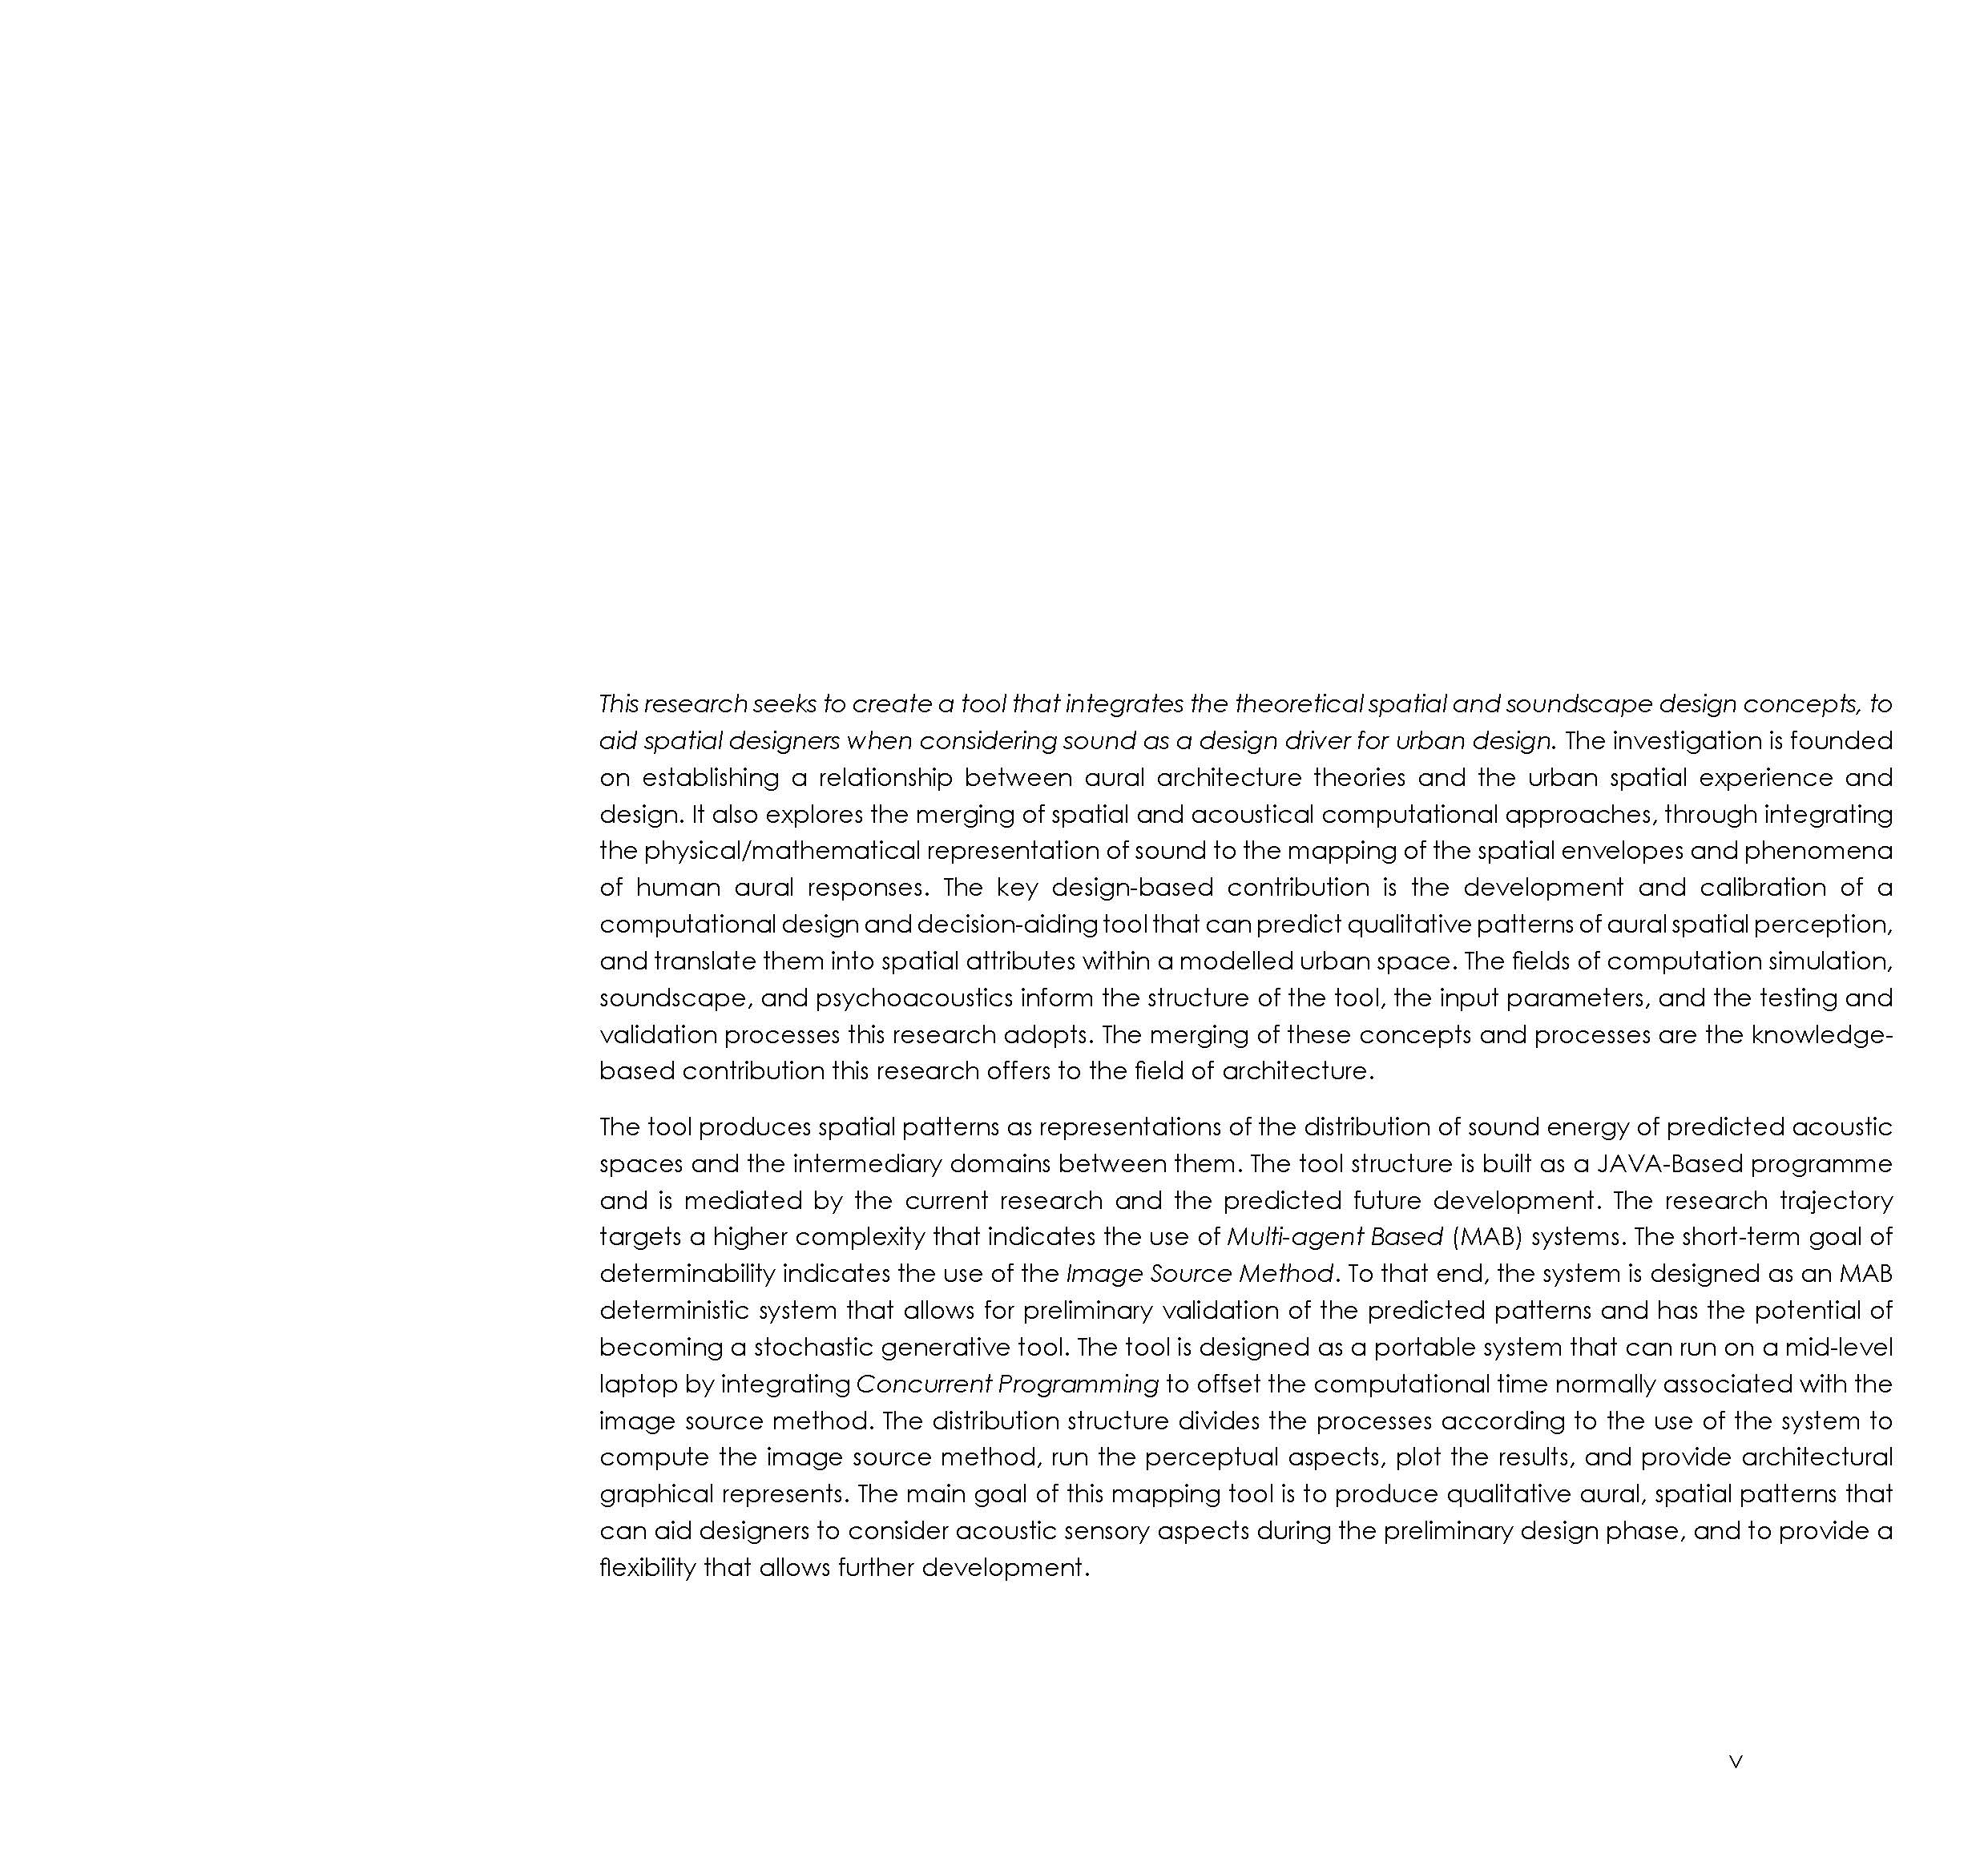 16.03.03_Thesis_01_Interactive_Page_007.jpg